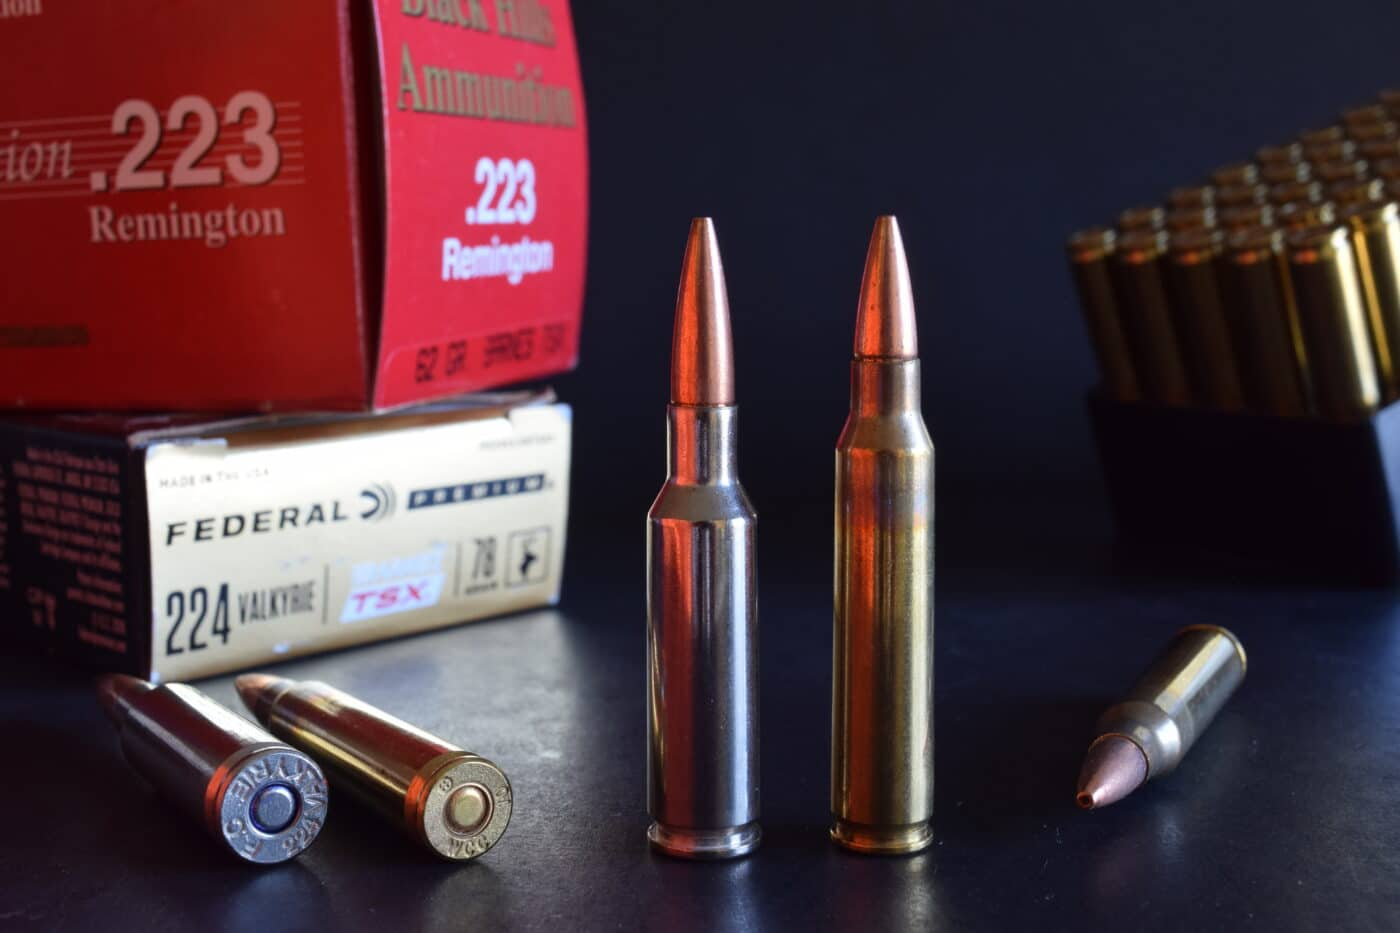 .224 Valkyrie for hunting